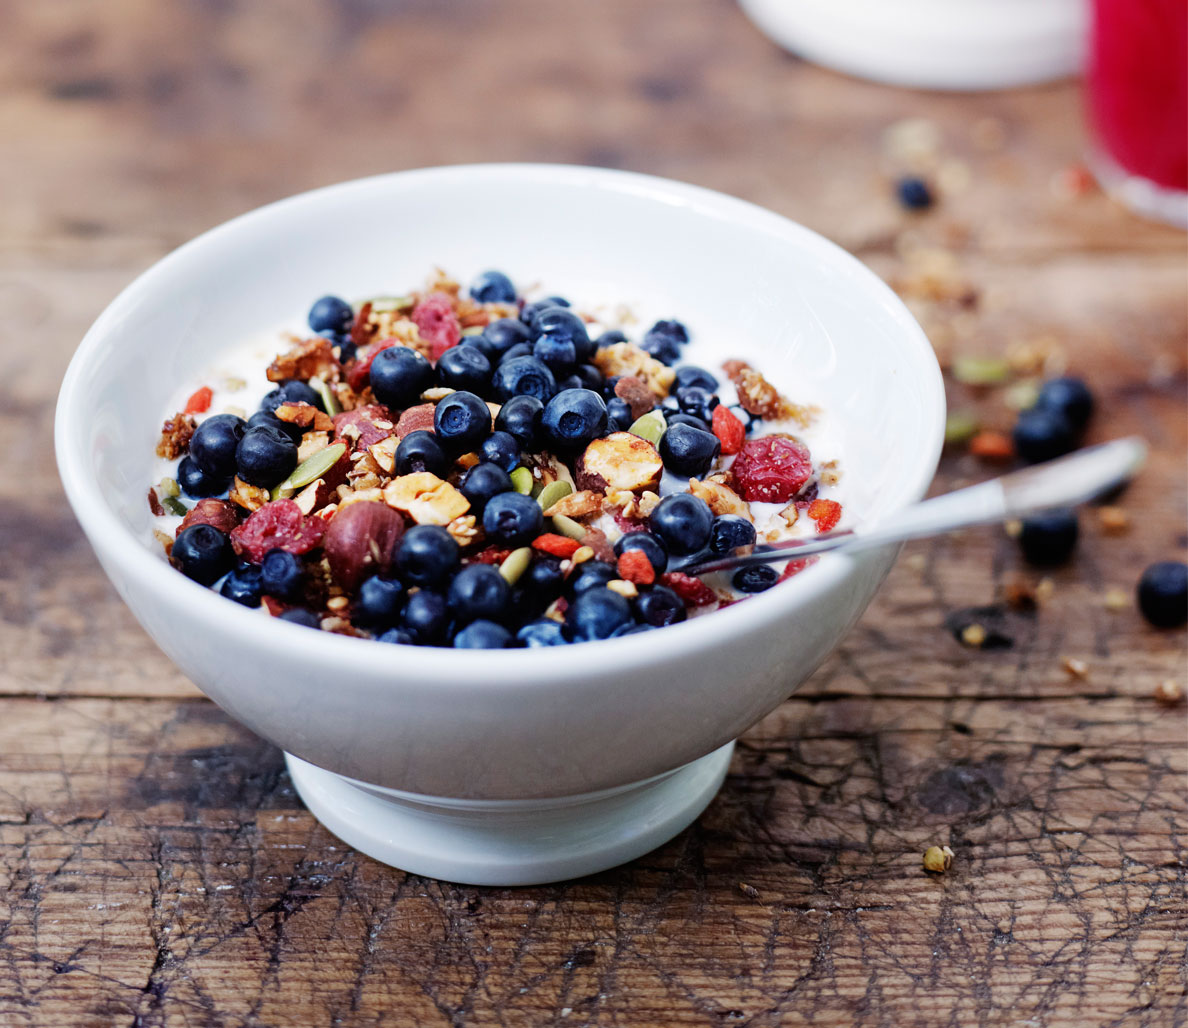 Food before workout for weight loss